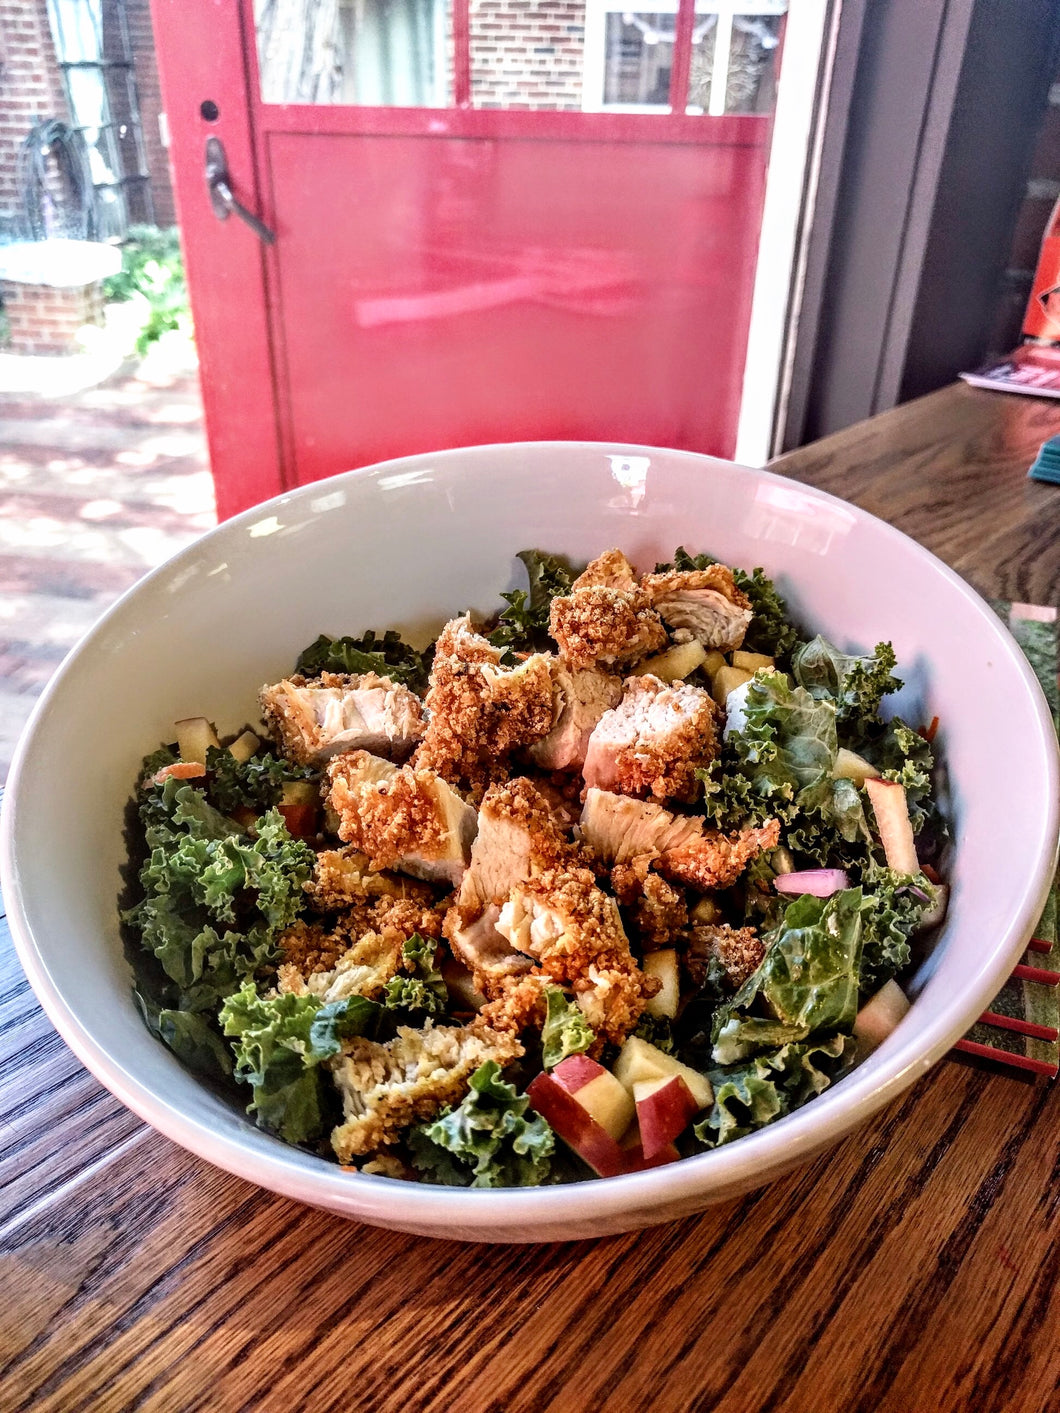 Gluten Free Kale Salad with Gluten Free Chicken Tenders